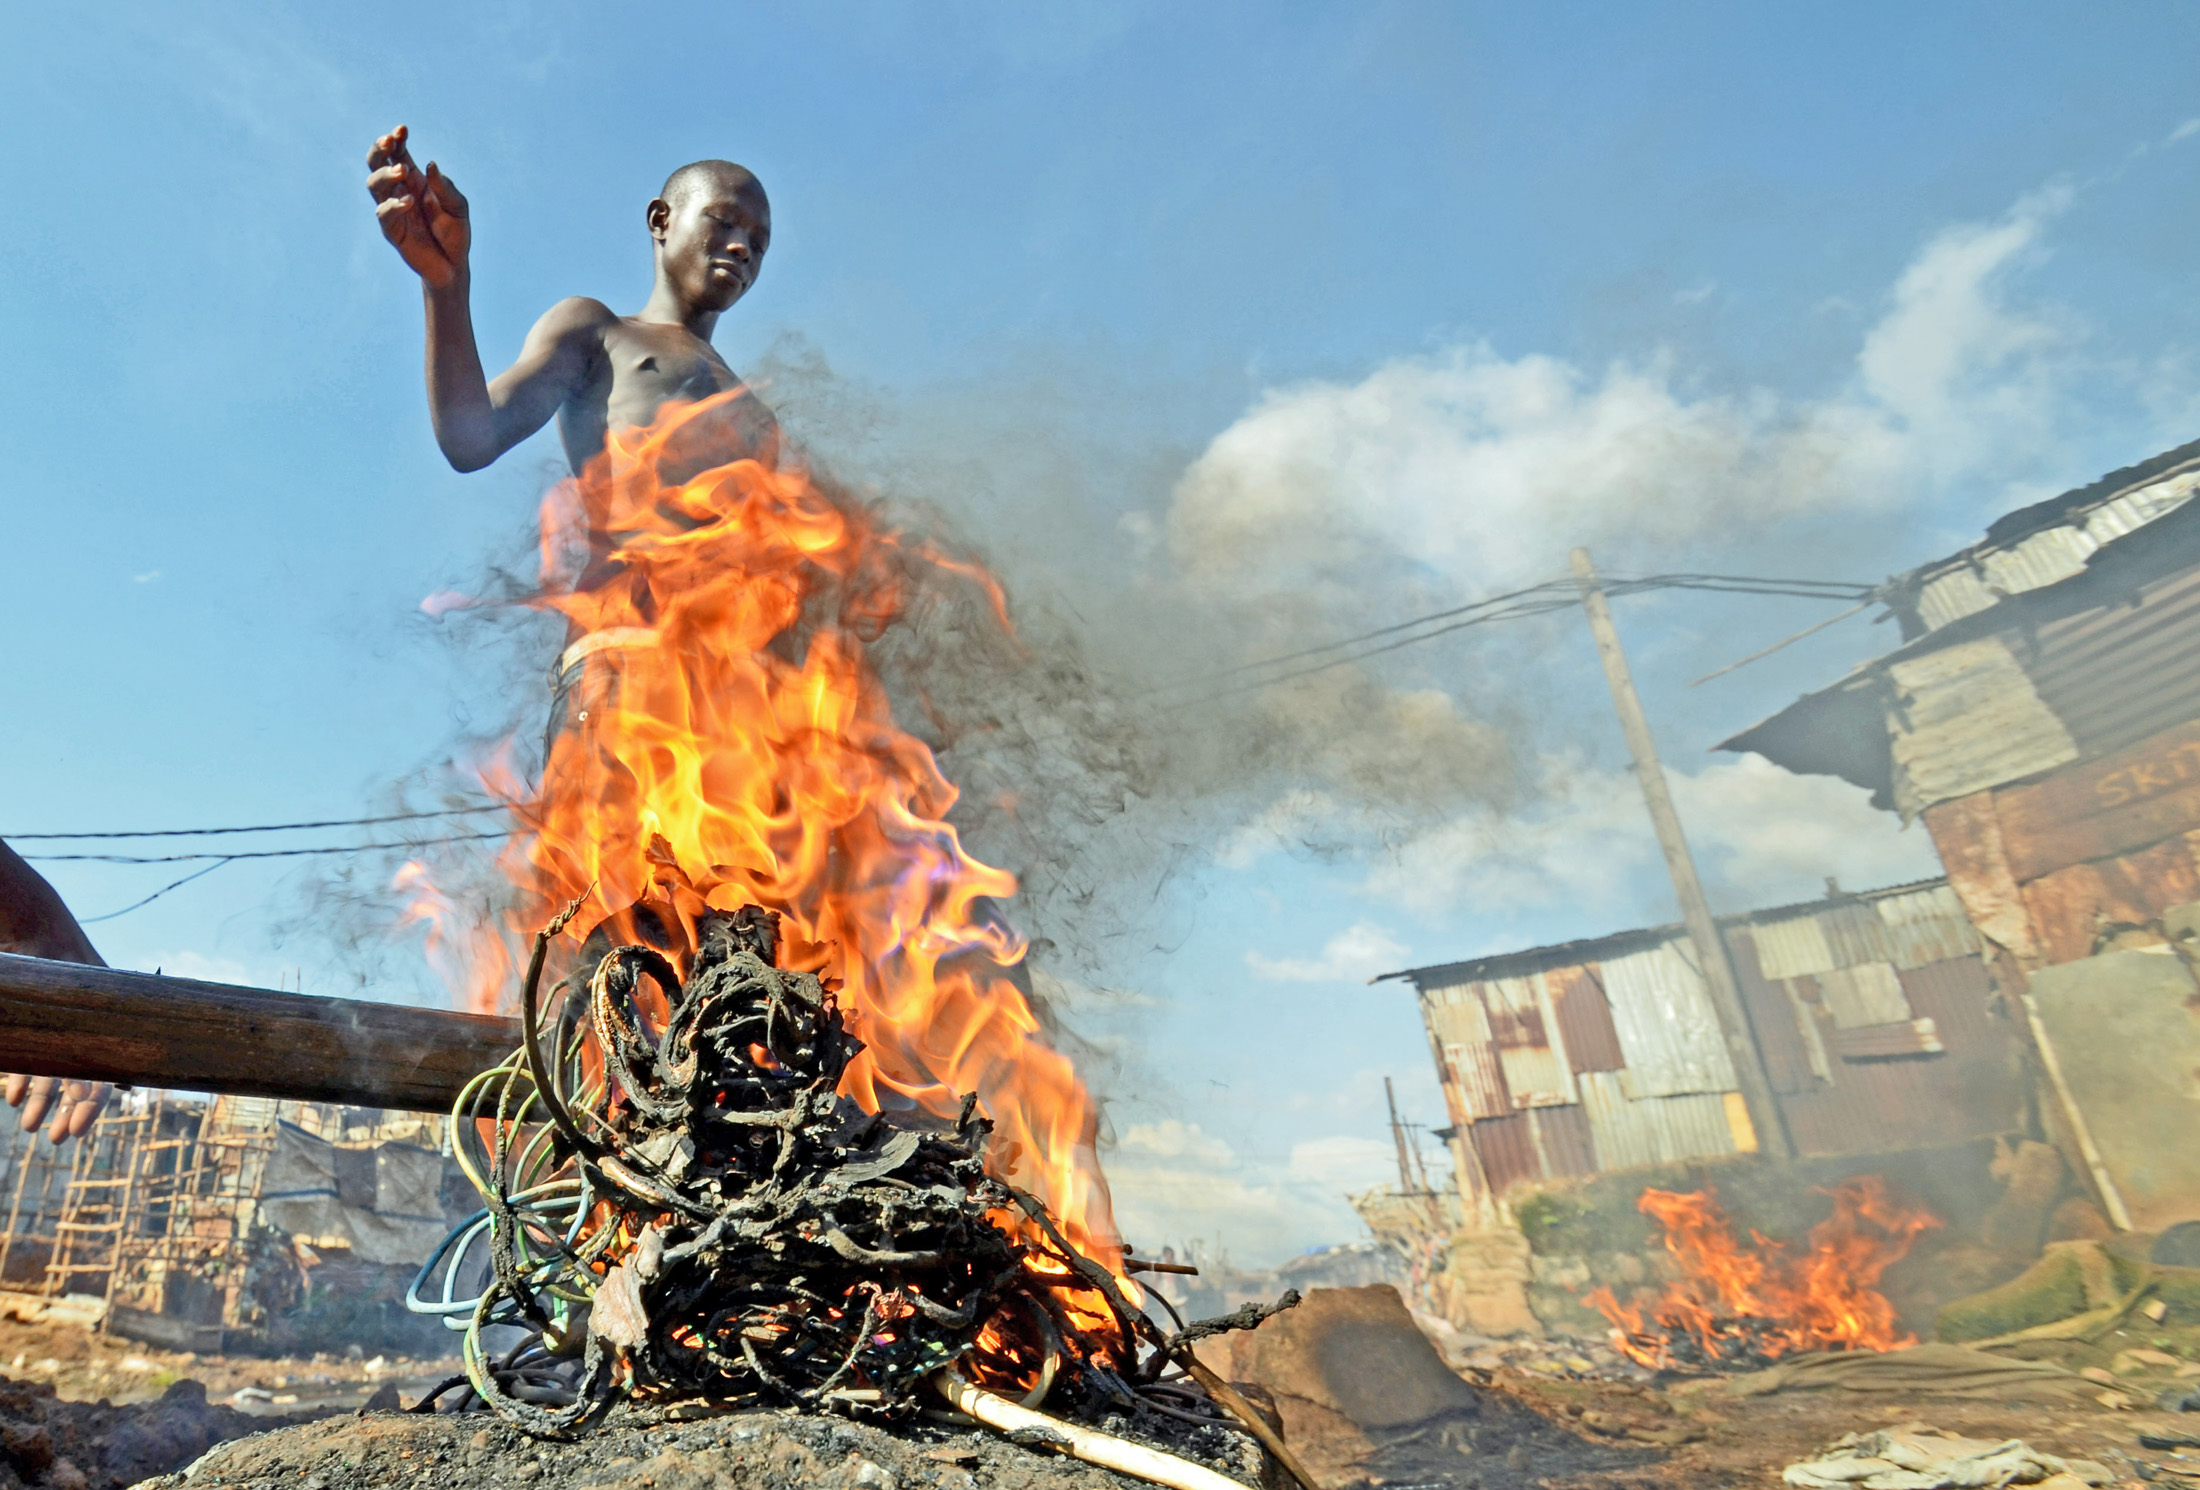 Mohammed Turay burns cables in Freetown's Kroo Bay slum to extract copper which he sells as scrap